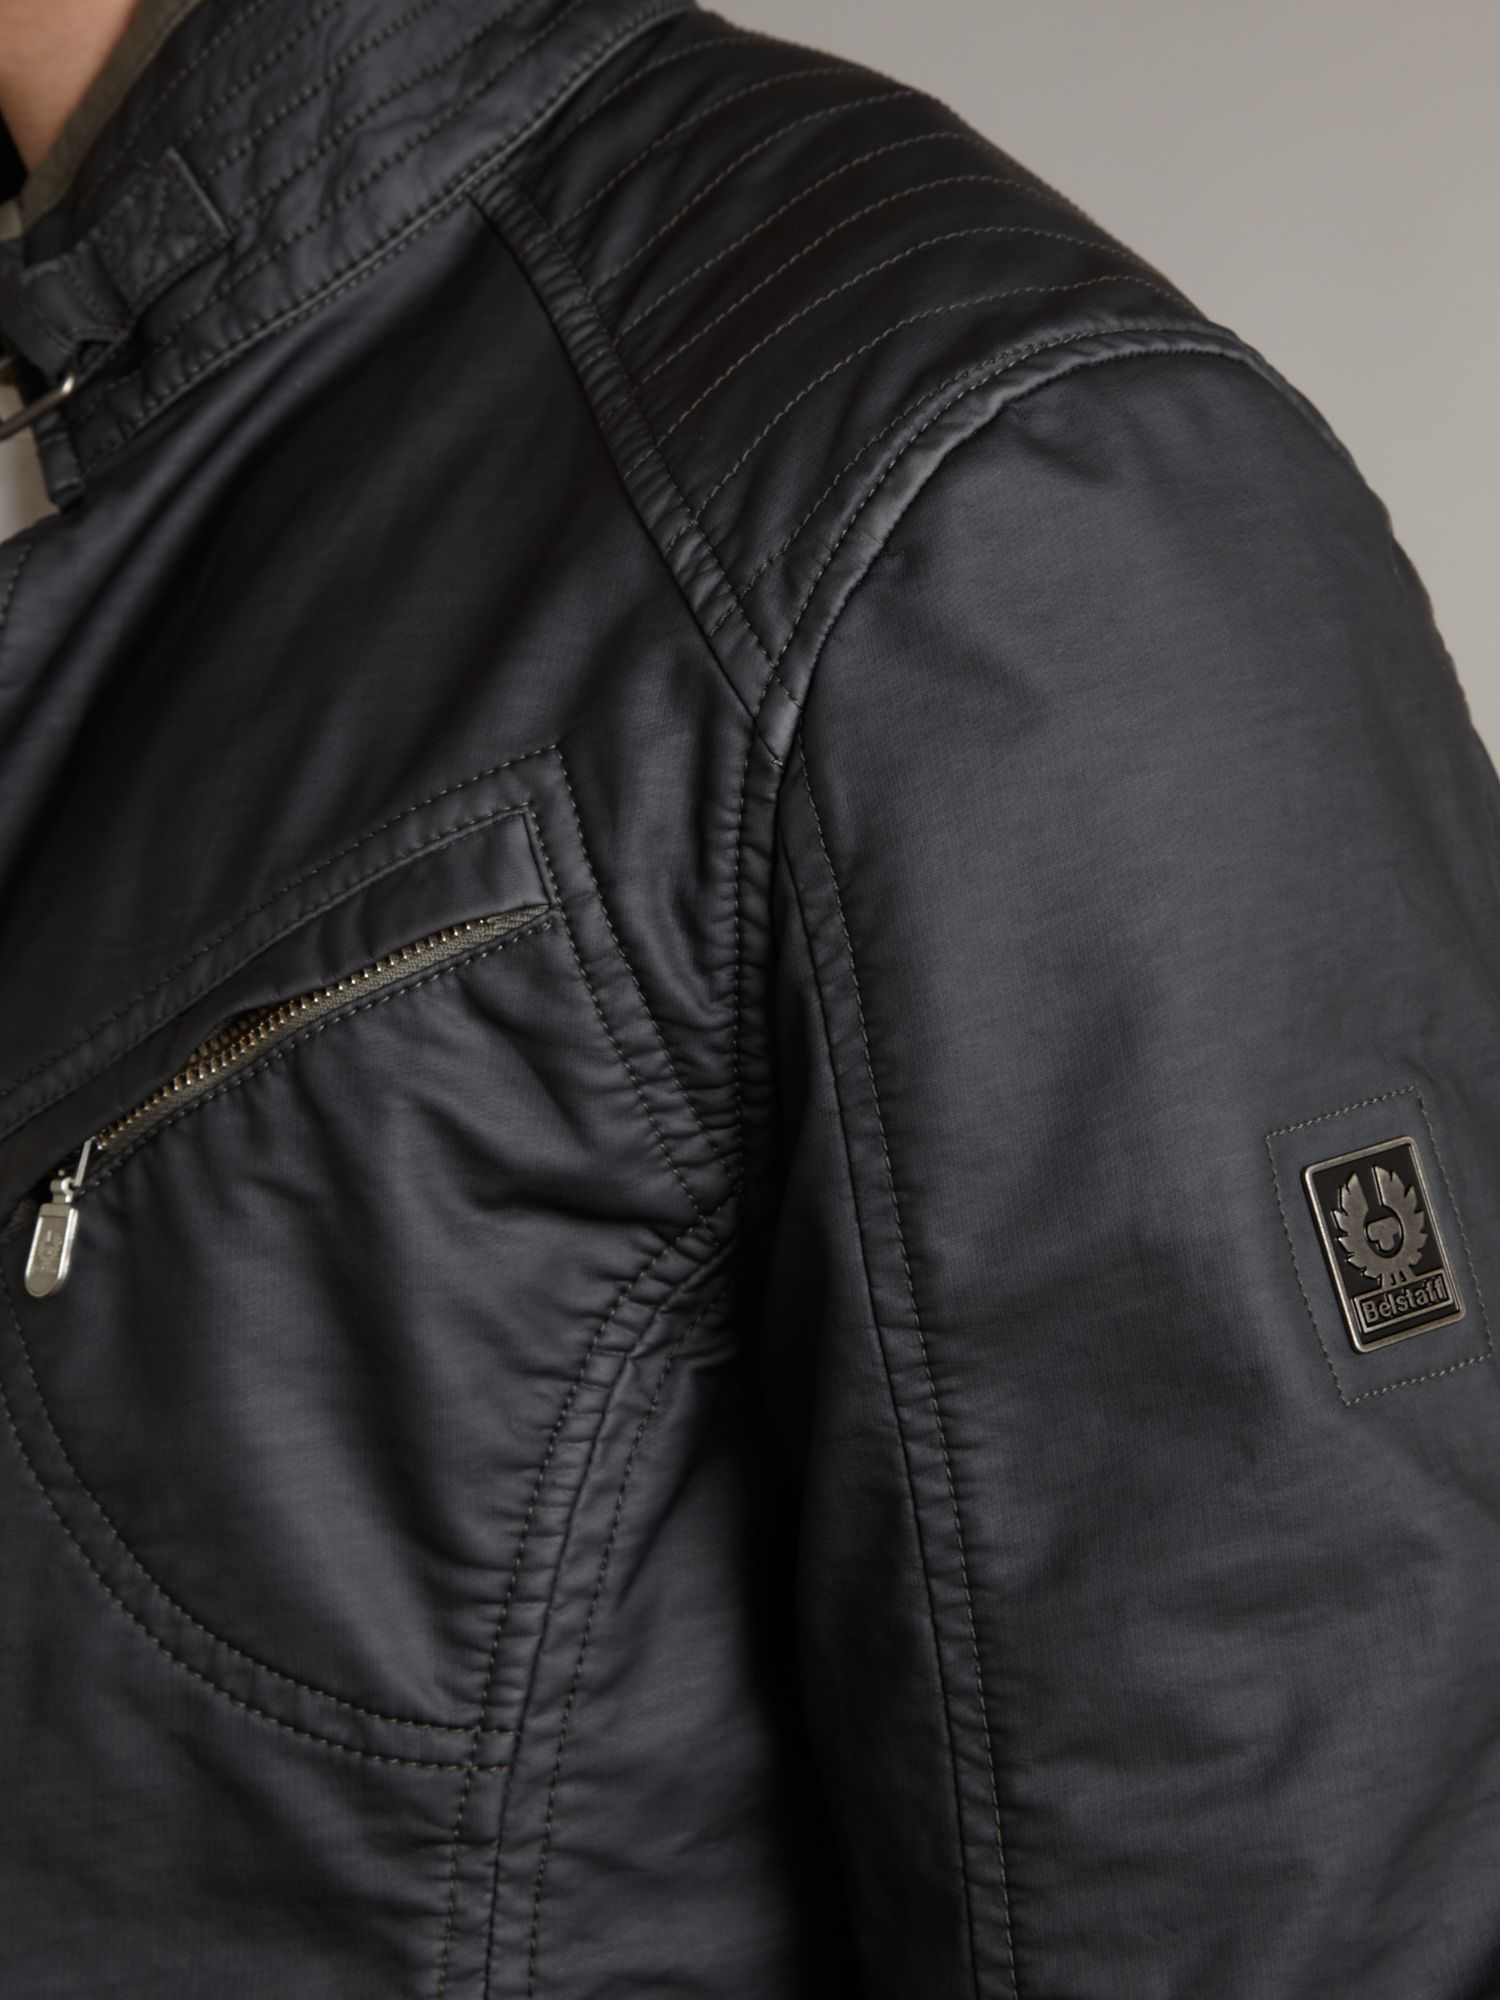 Belstaff Jacket Replica